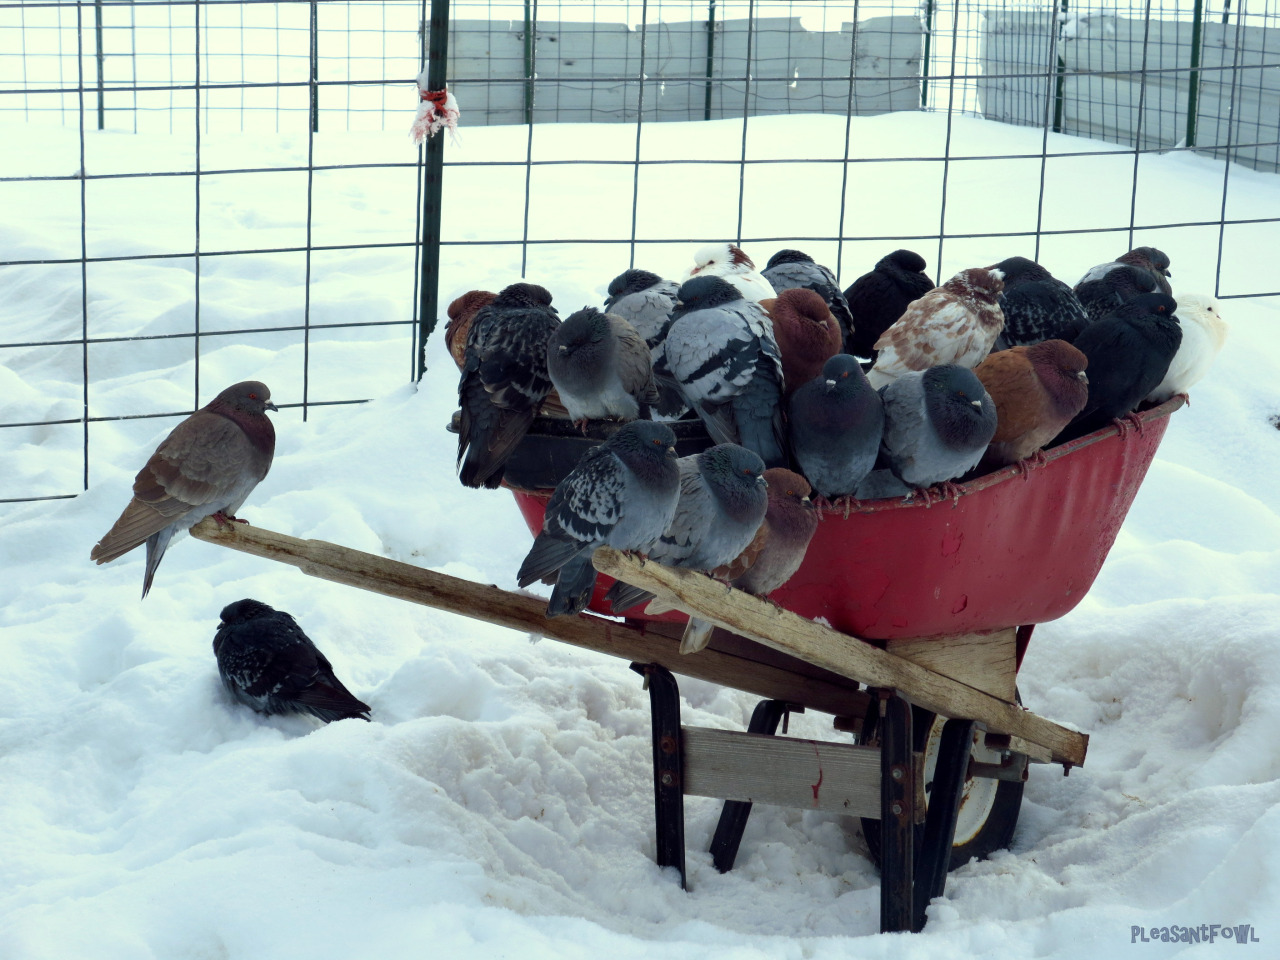 just dove things putinlands Respekt Karre Floofs waiting to be fed in their wheelbarrow pigeons trumpsland